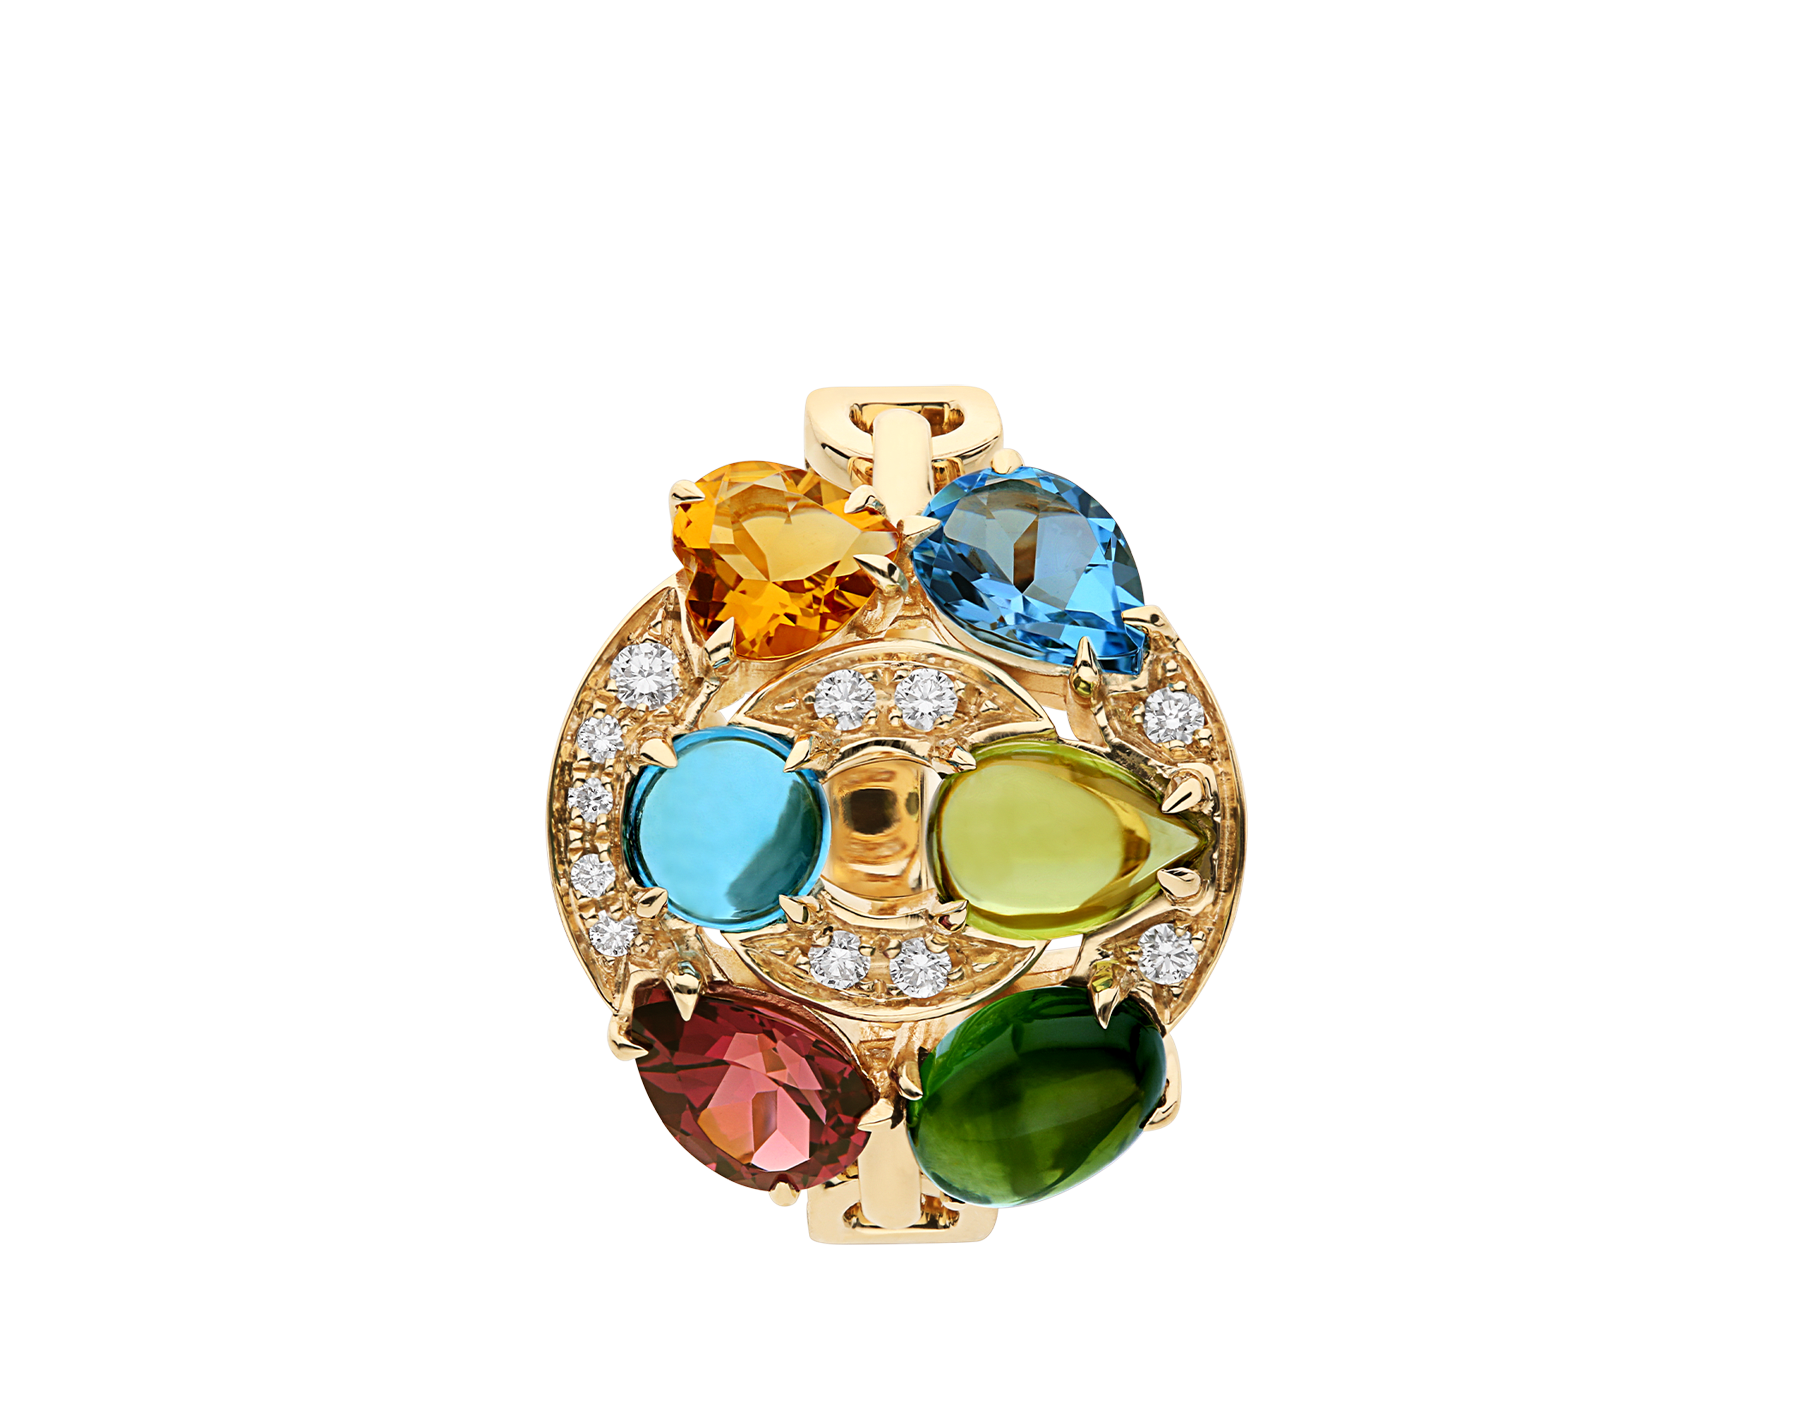 Cerchi shield-design 18 kt yellow gold ring set with blue topazes, green tourmaline, peridot, citrine quartz, rhodolite garnet and pavé diamonds AN852996 image 2